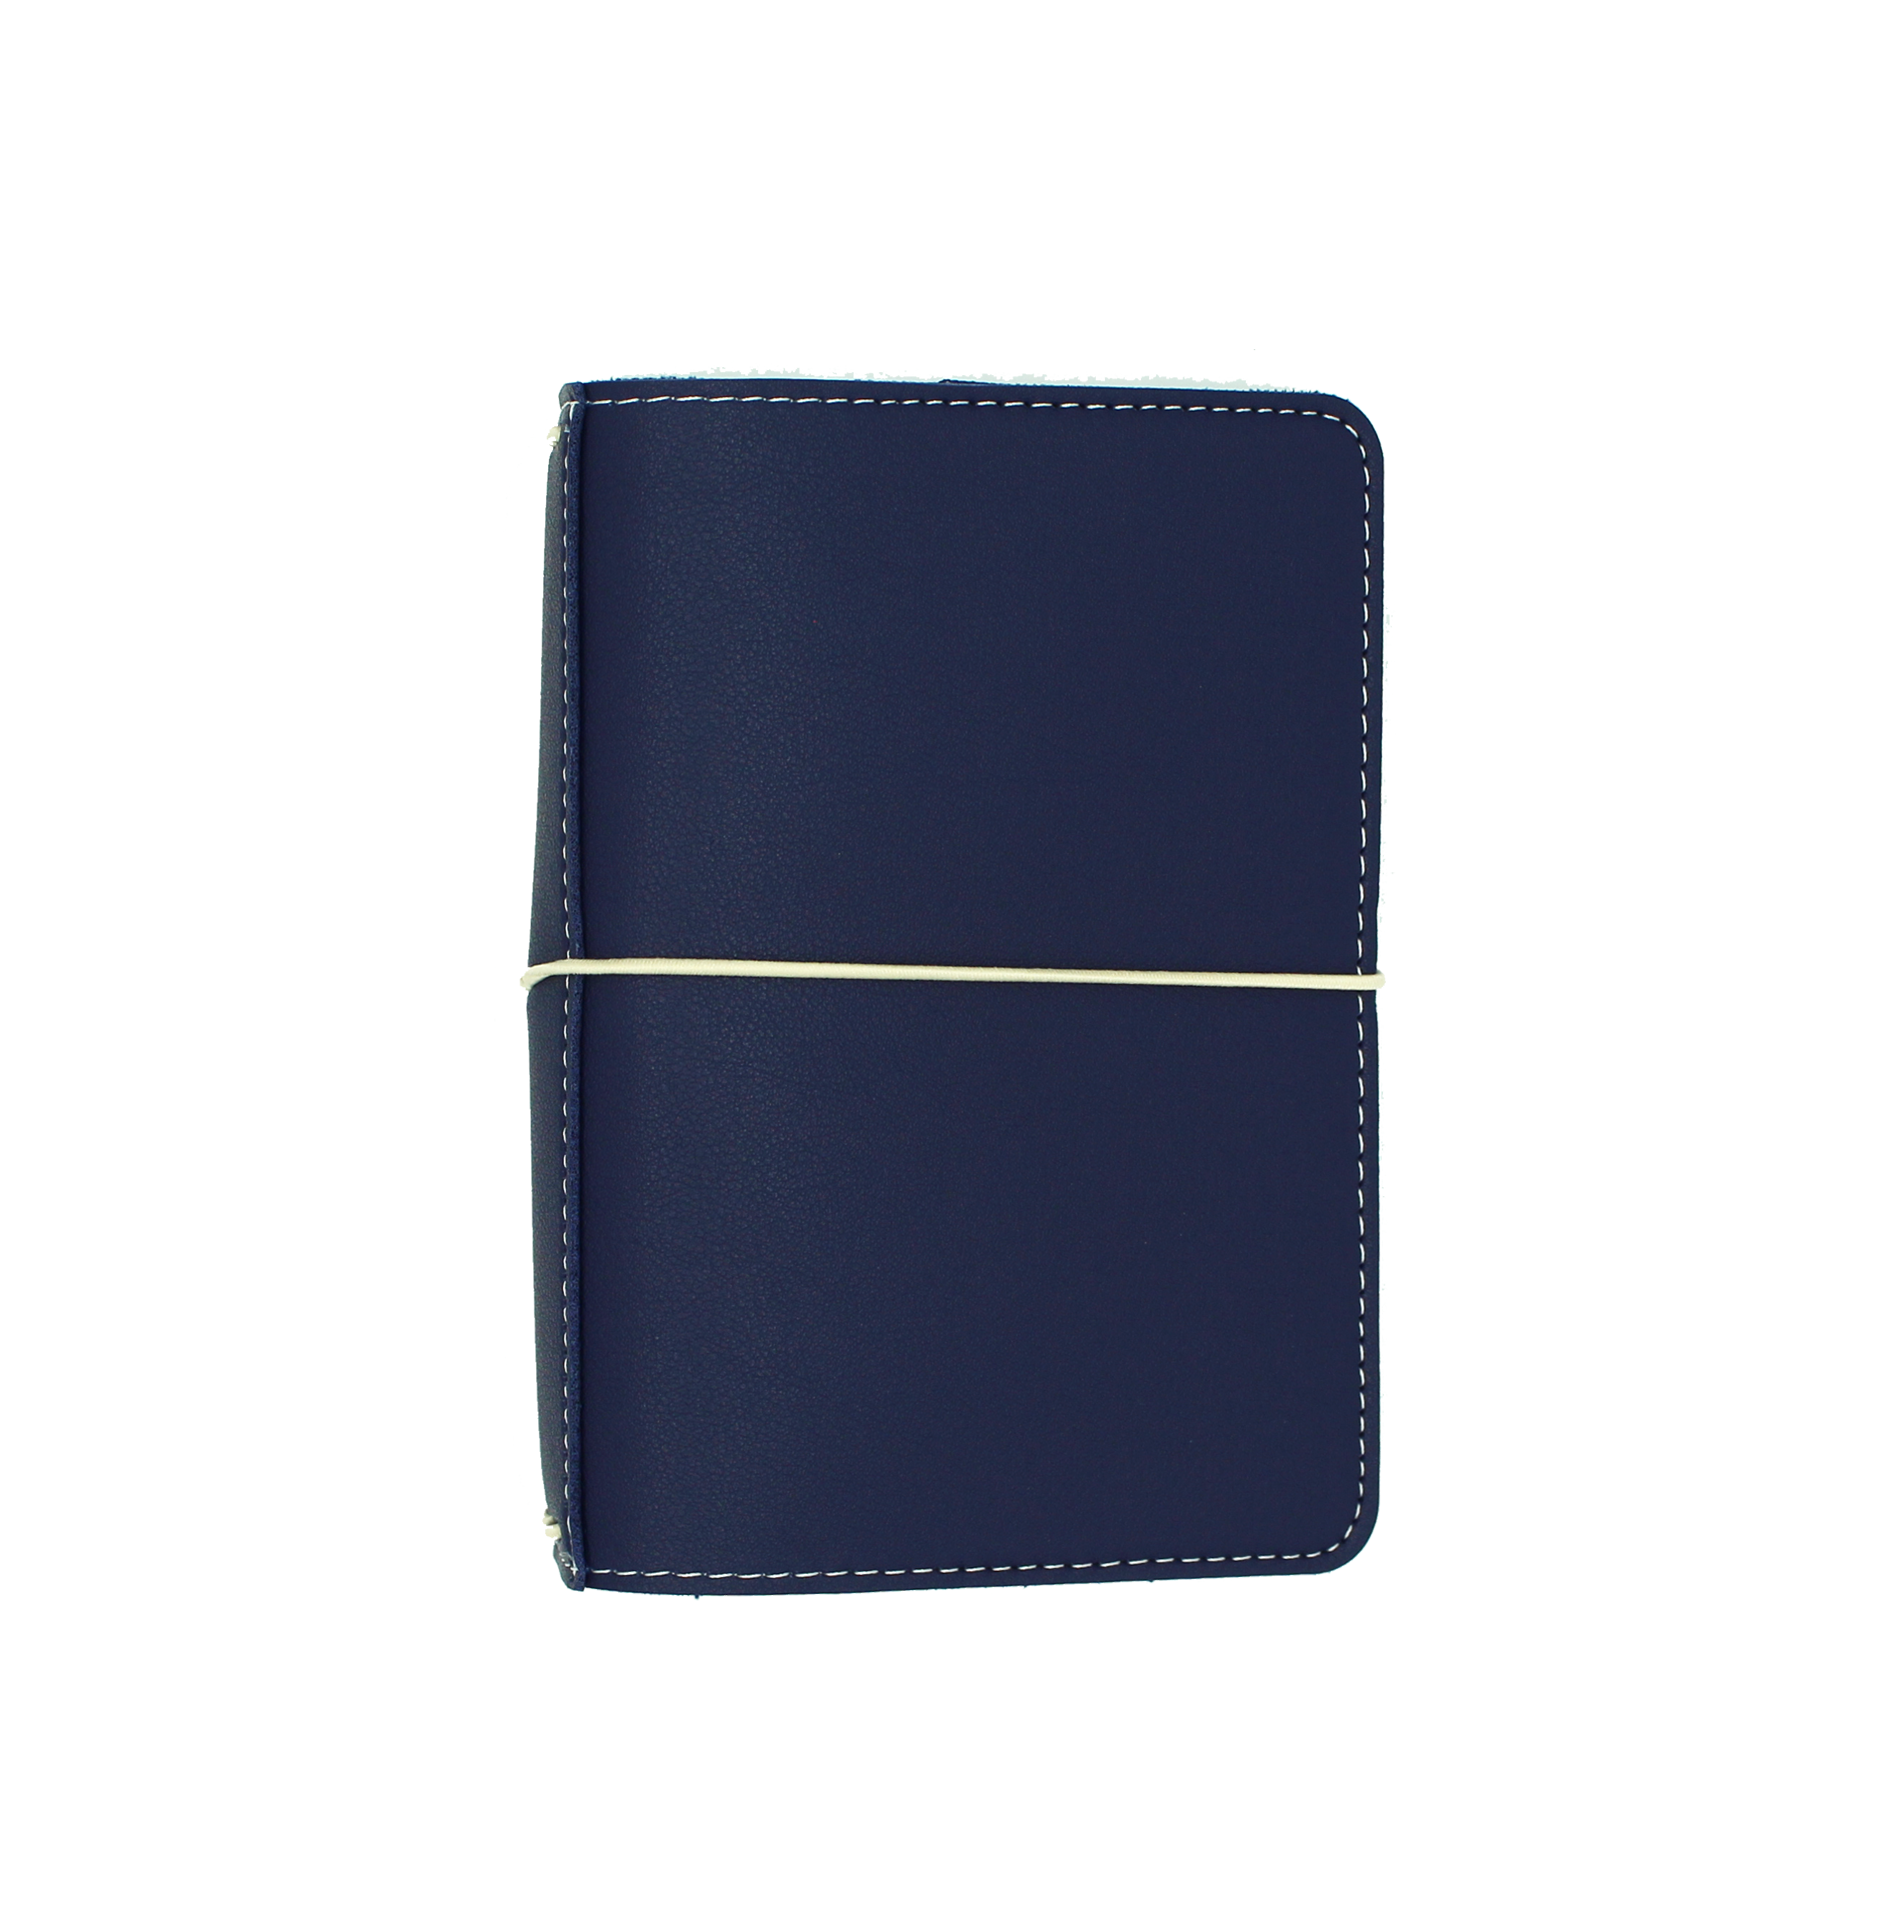 Perfect Fit B6 Traveler's Notebook - Twilight